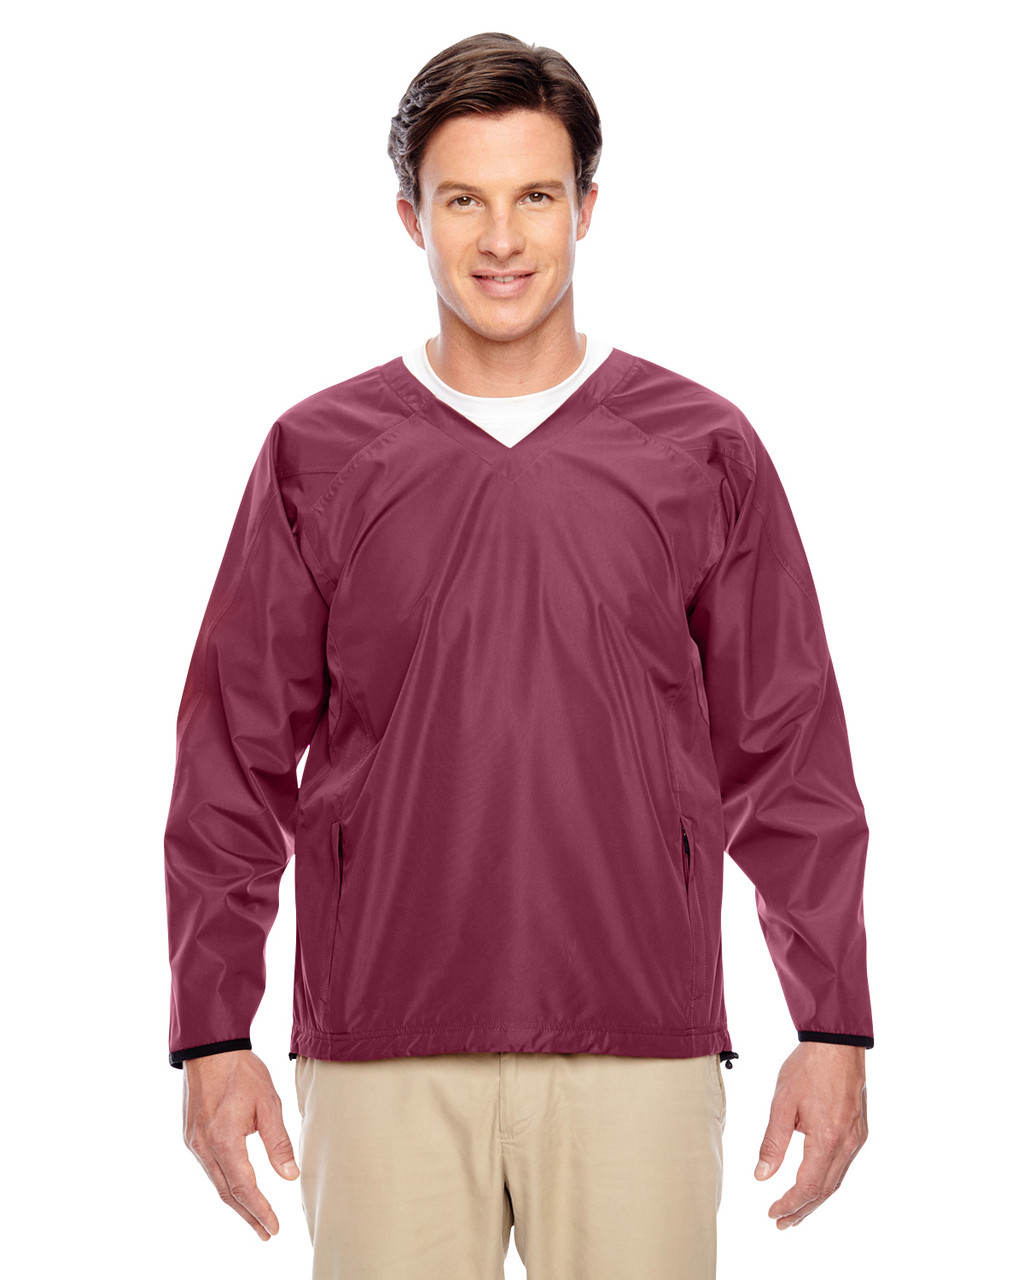 Sport Maroon TT84 Team 365 Dominator Waterproof Windshirt